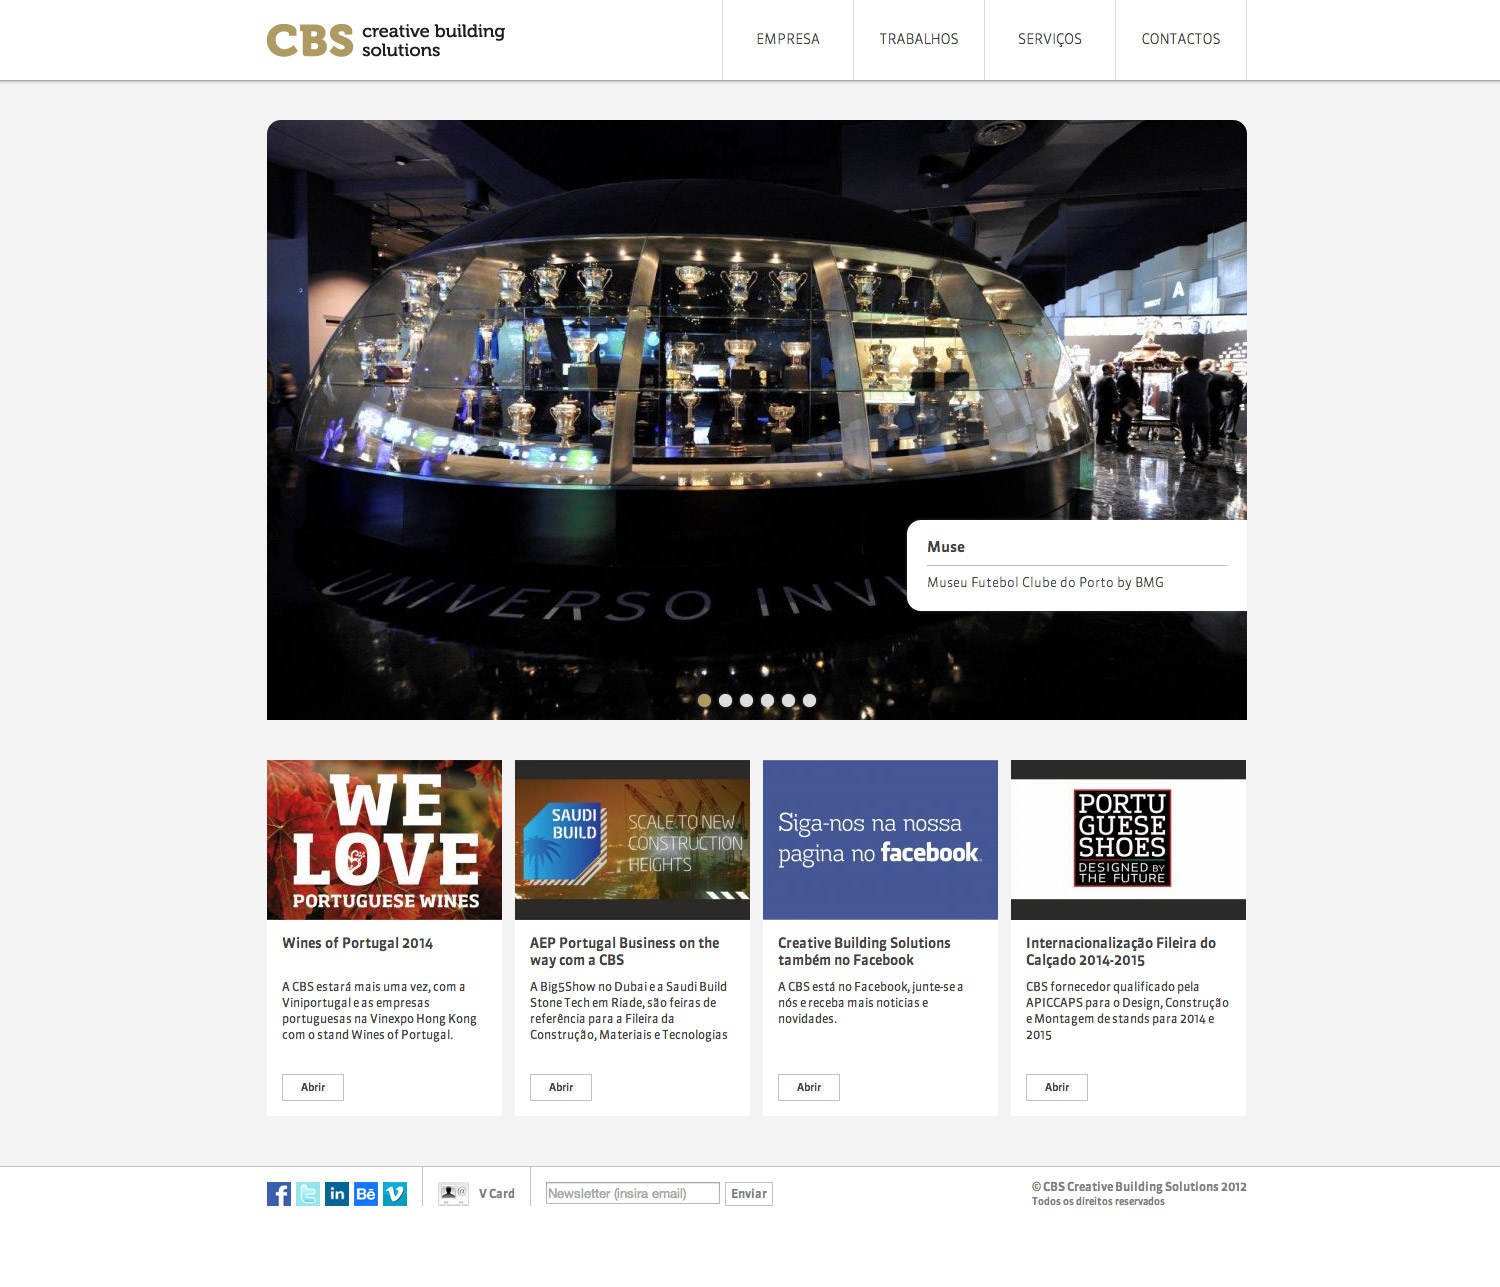 CBS - Creative Building Solutions